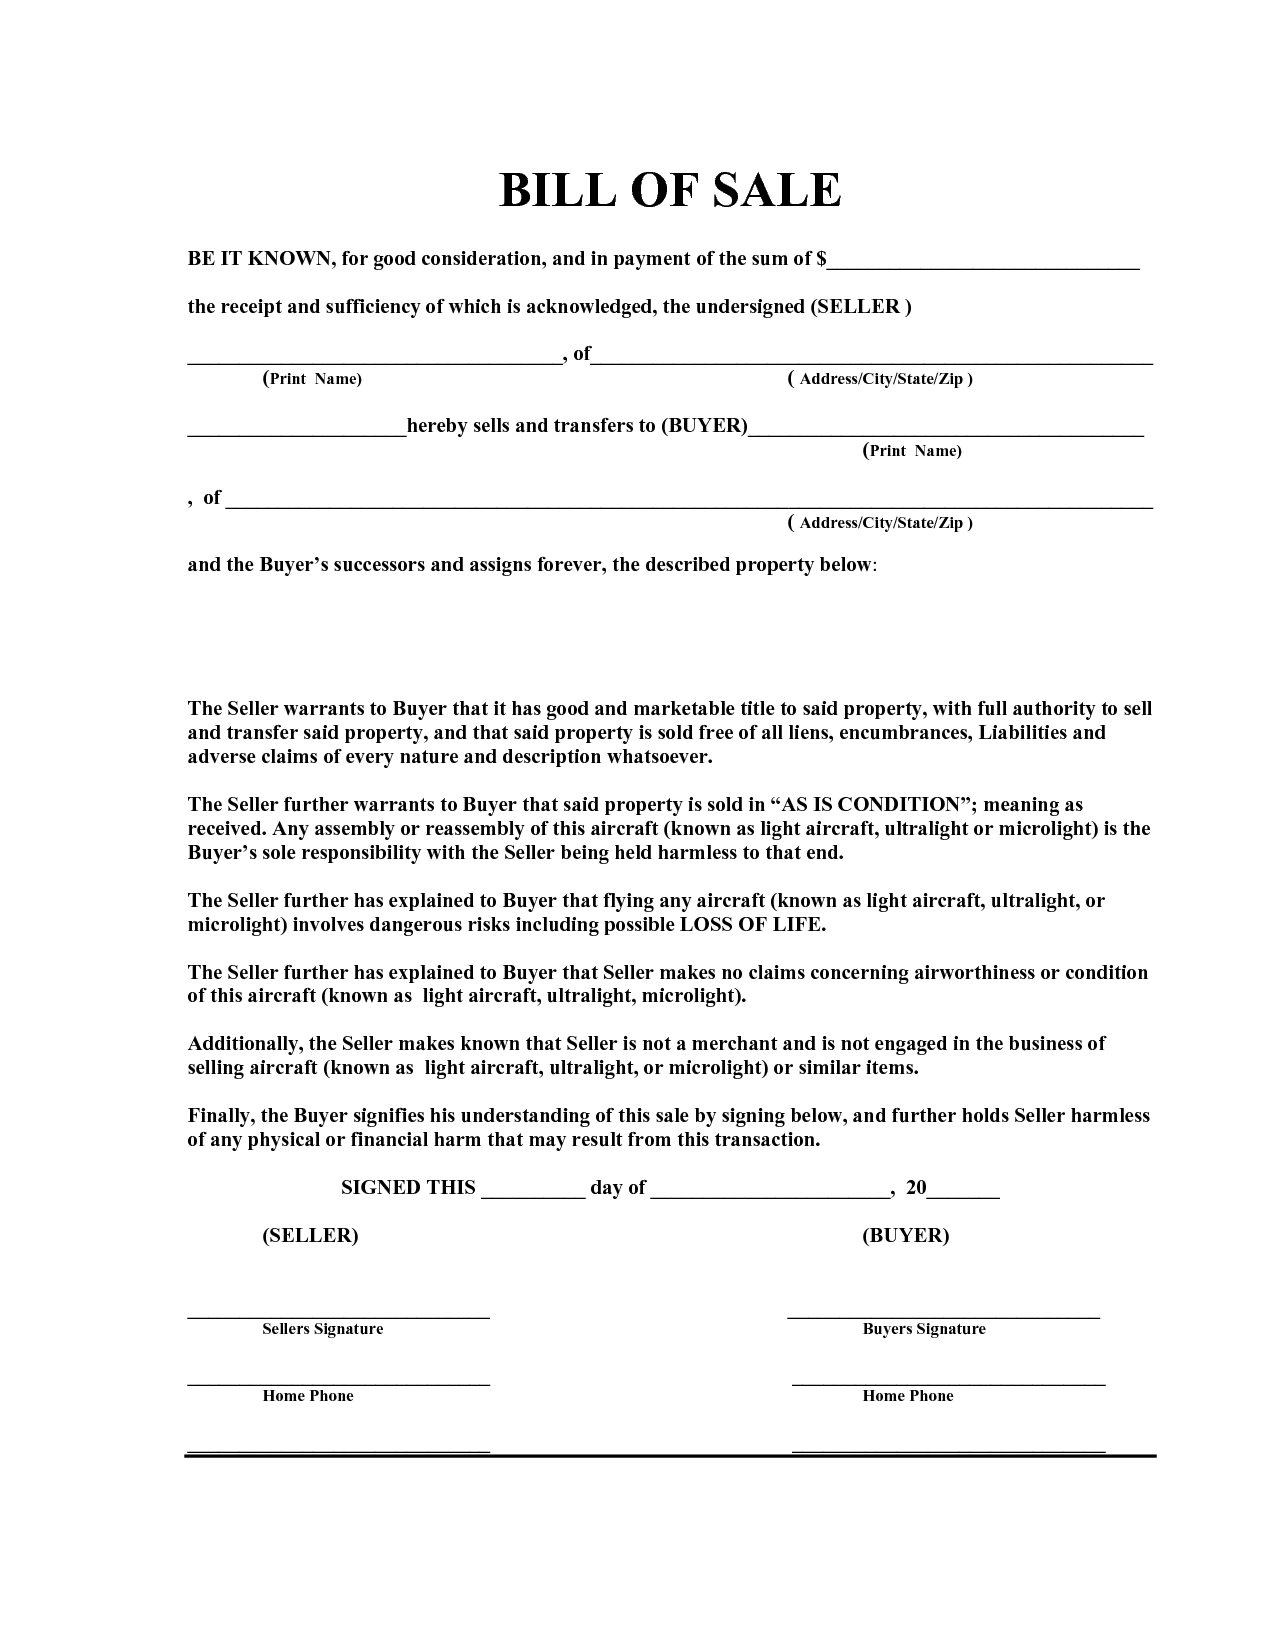 free bill of sale template pdf by marymenti as is bill of sale real state pinterest. Black Bedroom Furniture Sets. Home Design Ideas